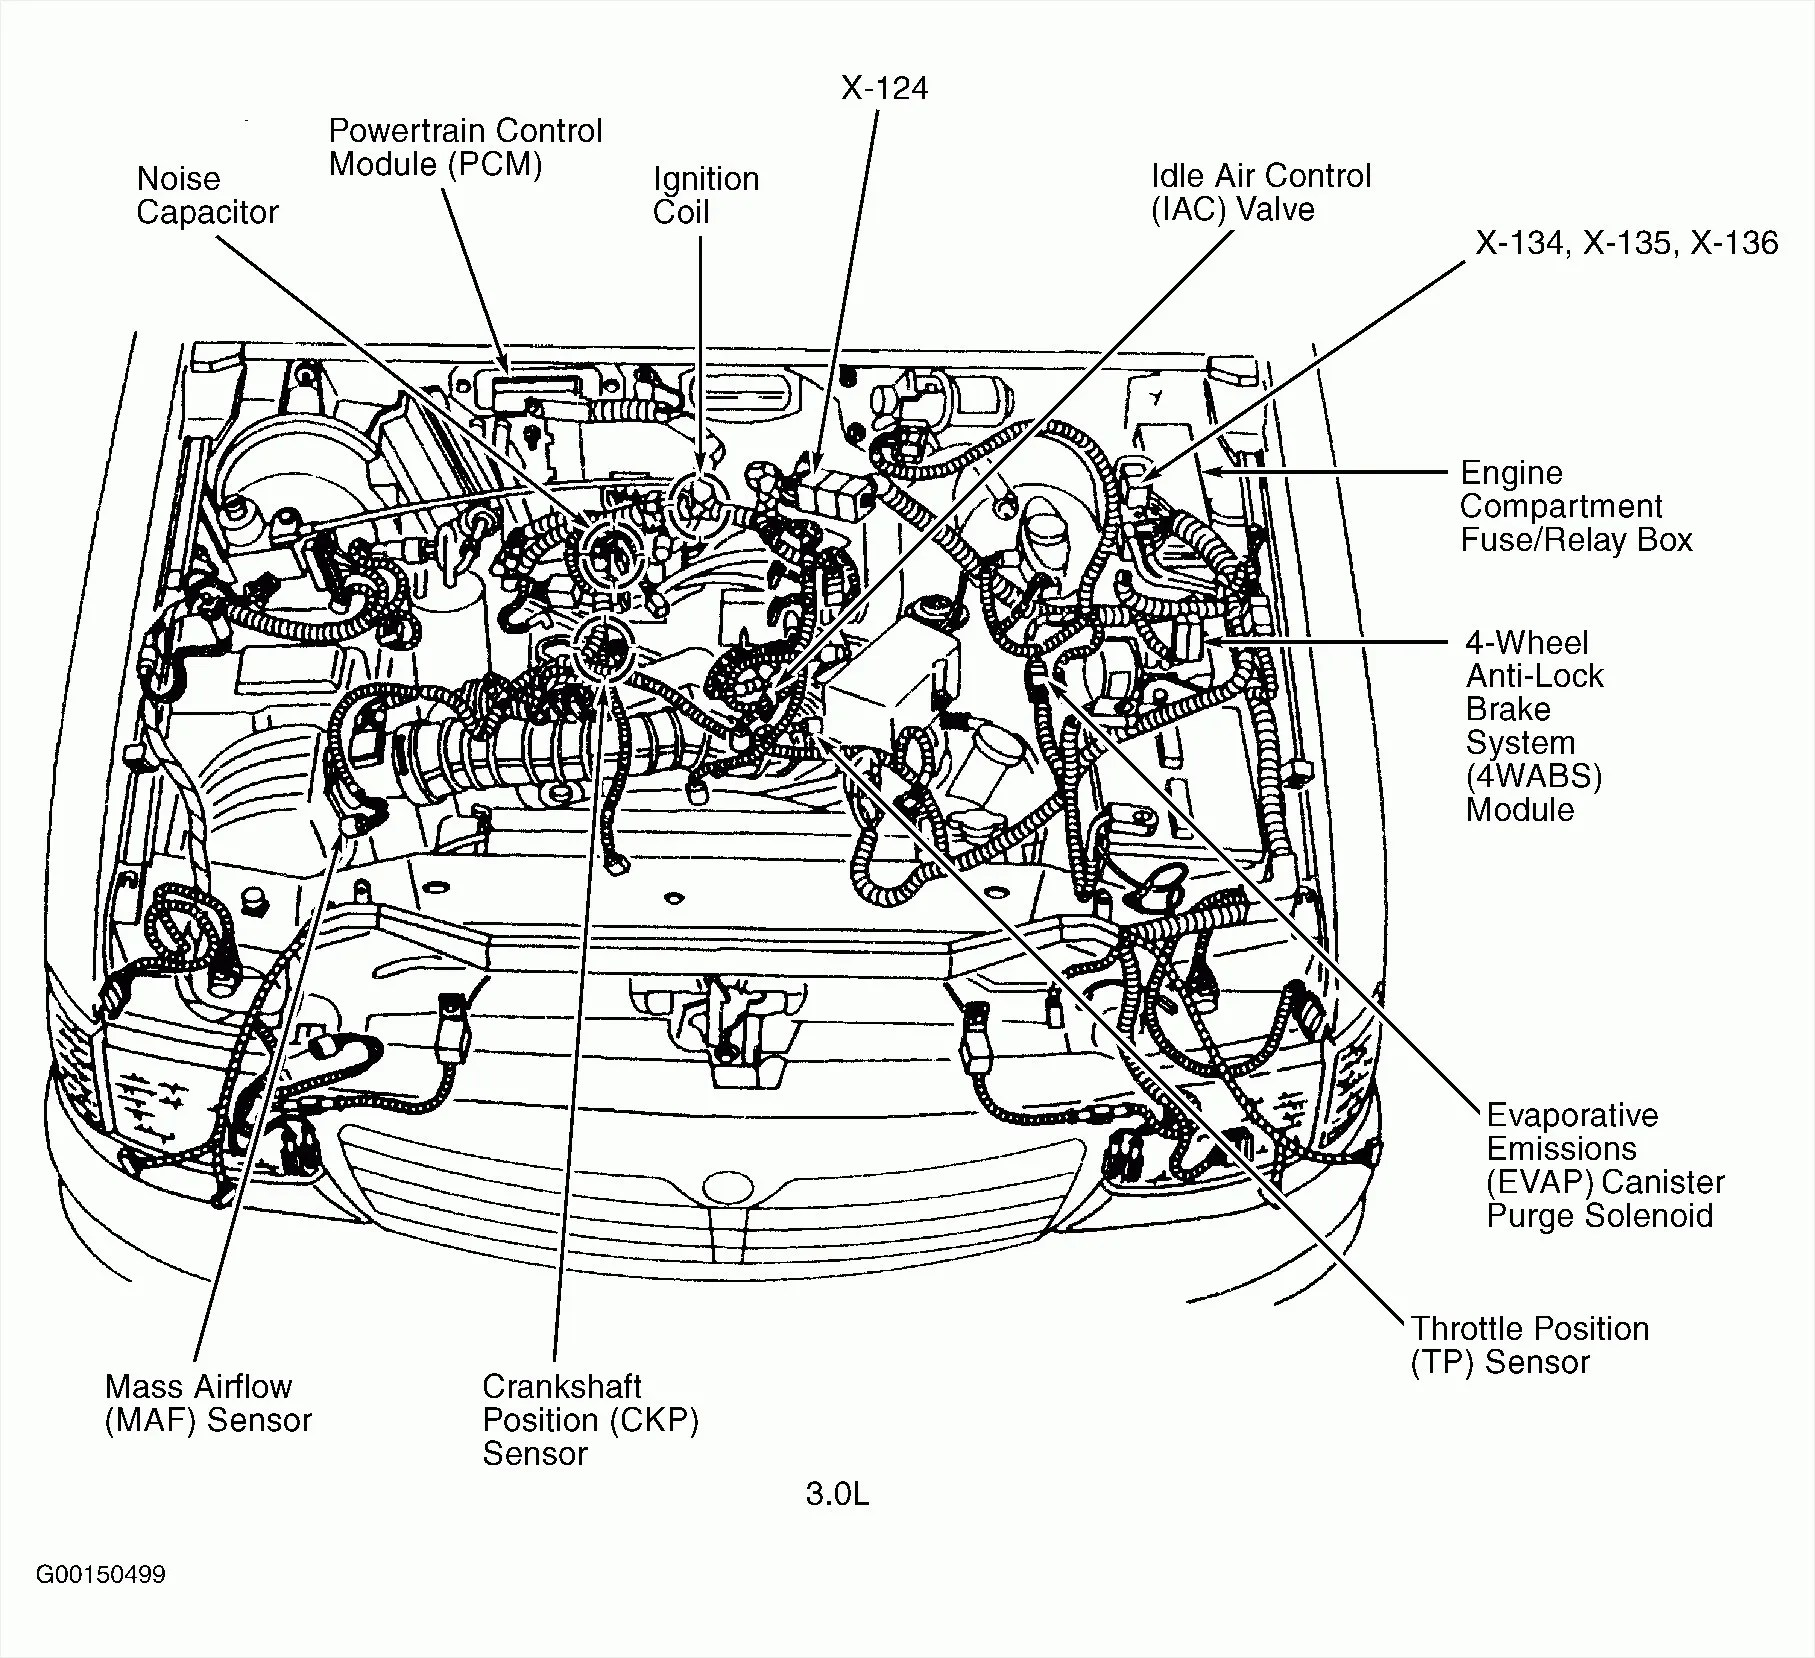 hight resolution of 1997 ford ranger engine diagram wiring diagram paper1997 ford ranger engine diagram wiring diagram datasource 1997